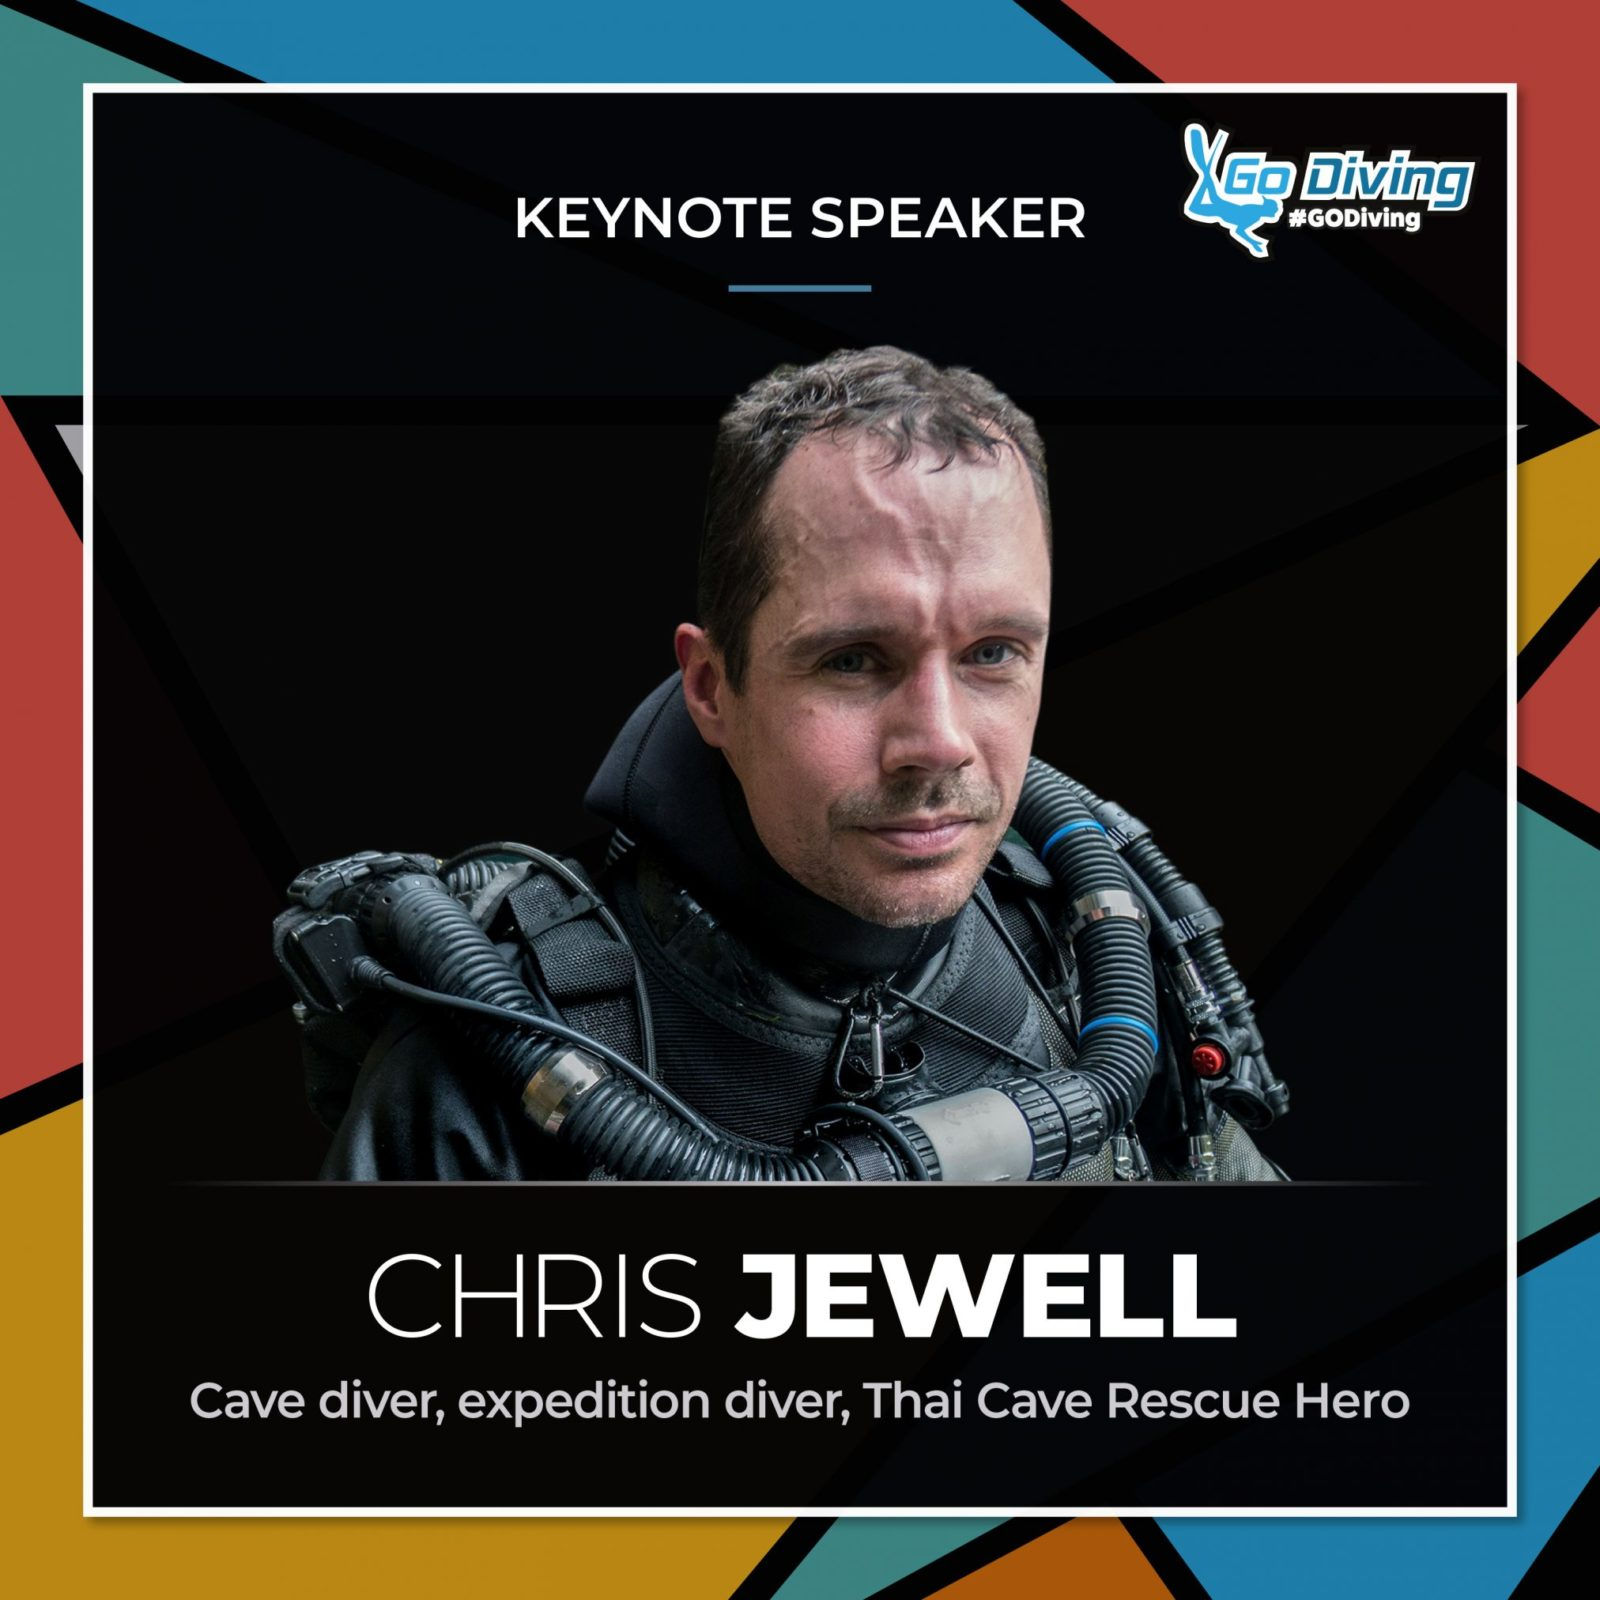 GO Diving Show speaker profile - Chris Jewell 7